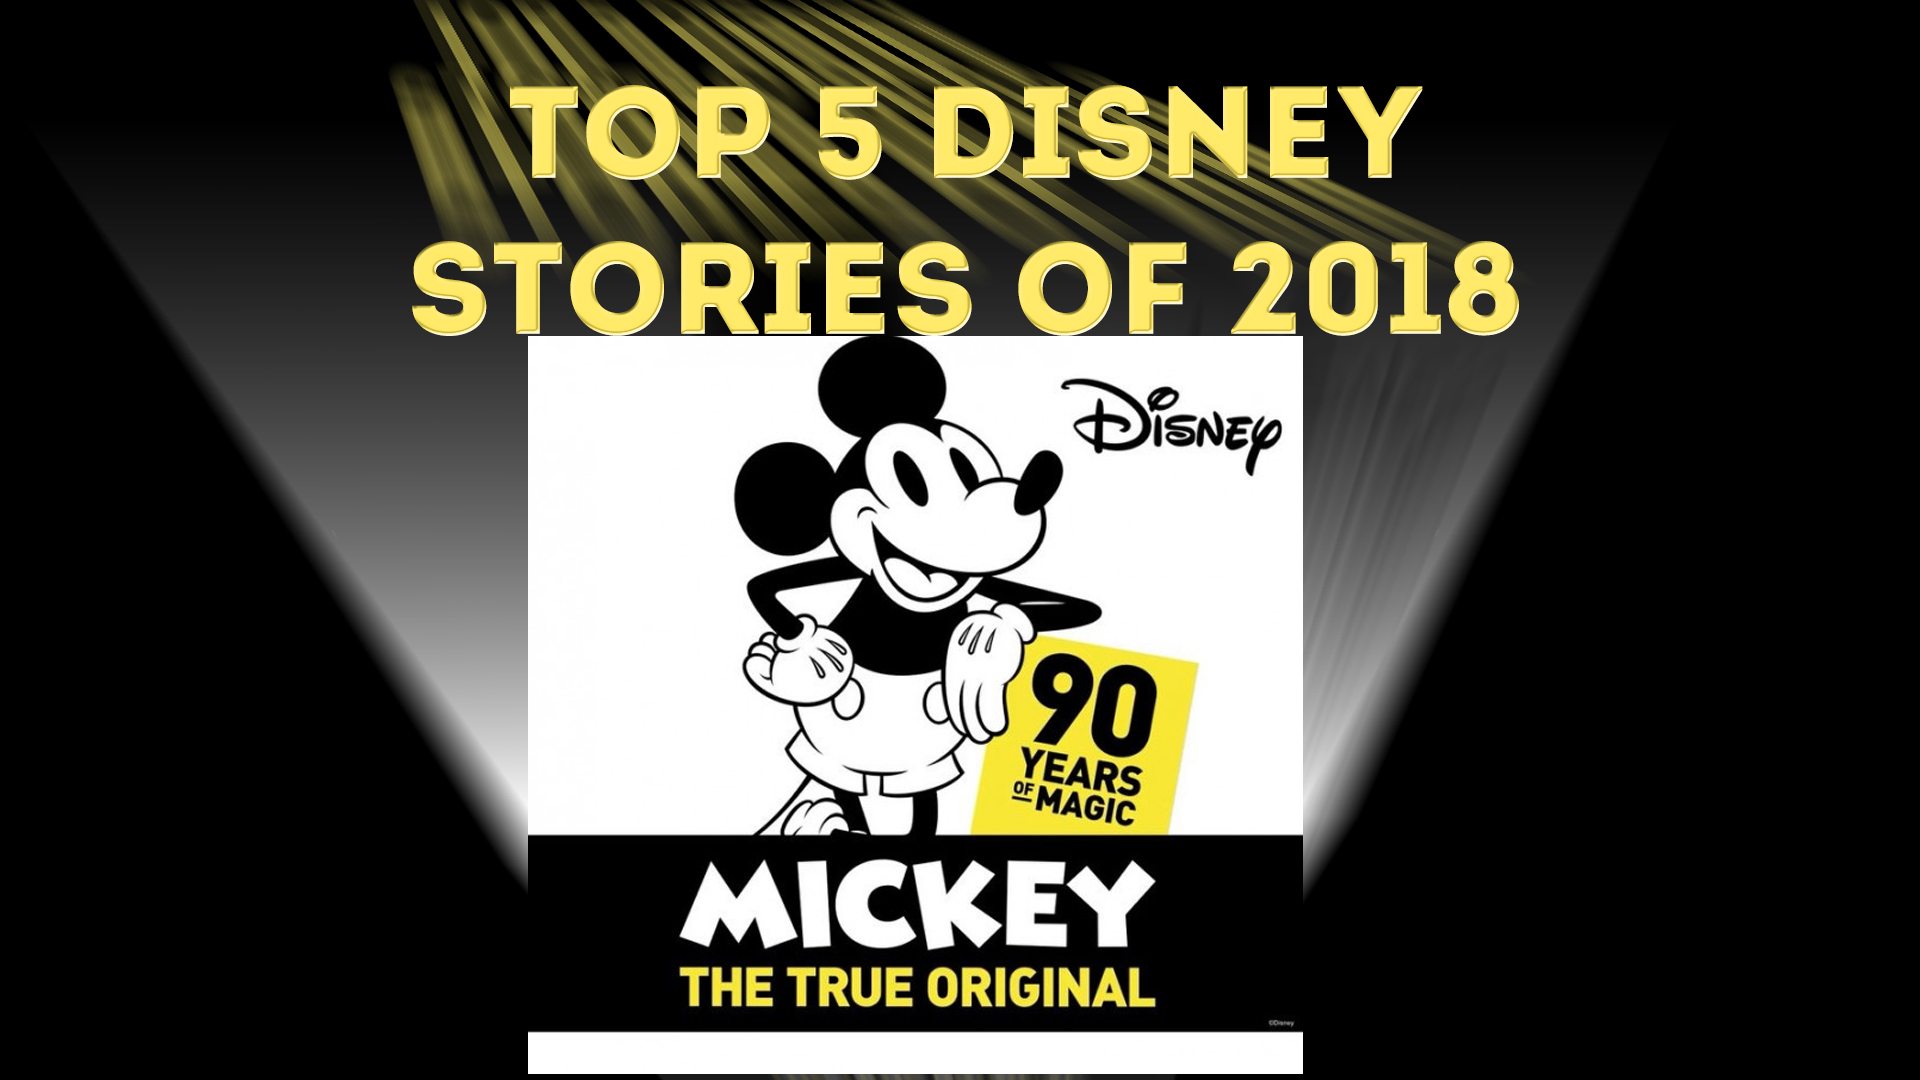 Here's Why Mickey Mouse at 90 is One of the Biggest Disney Stories of 2018 – Top 5 Disney Stories of 2018